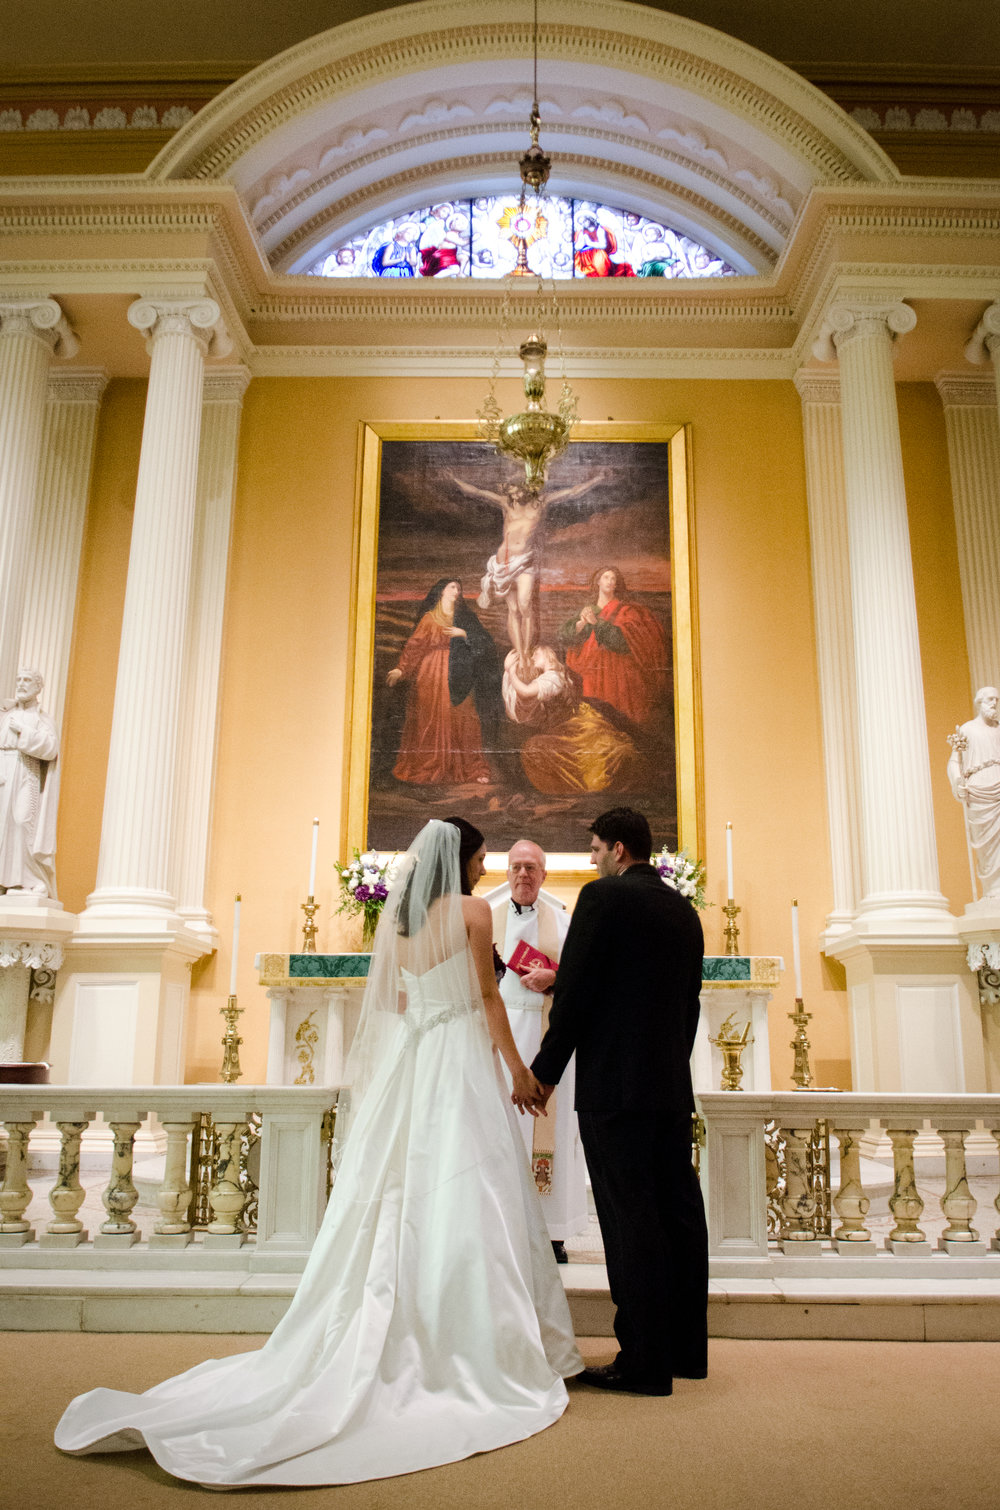 16 Old St Josephs Wedding Philadelphia Ceremony.JPG